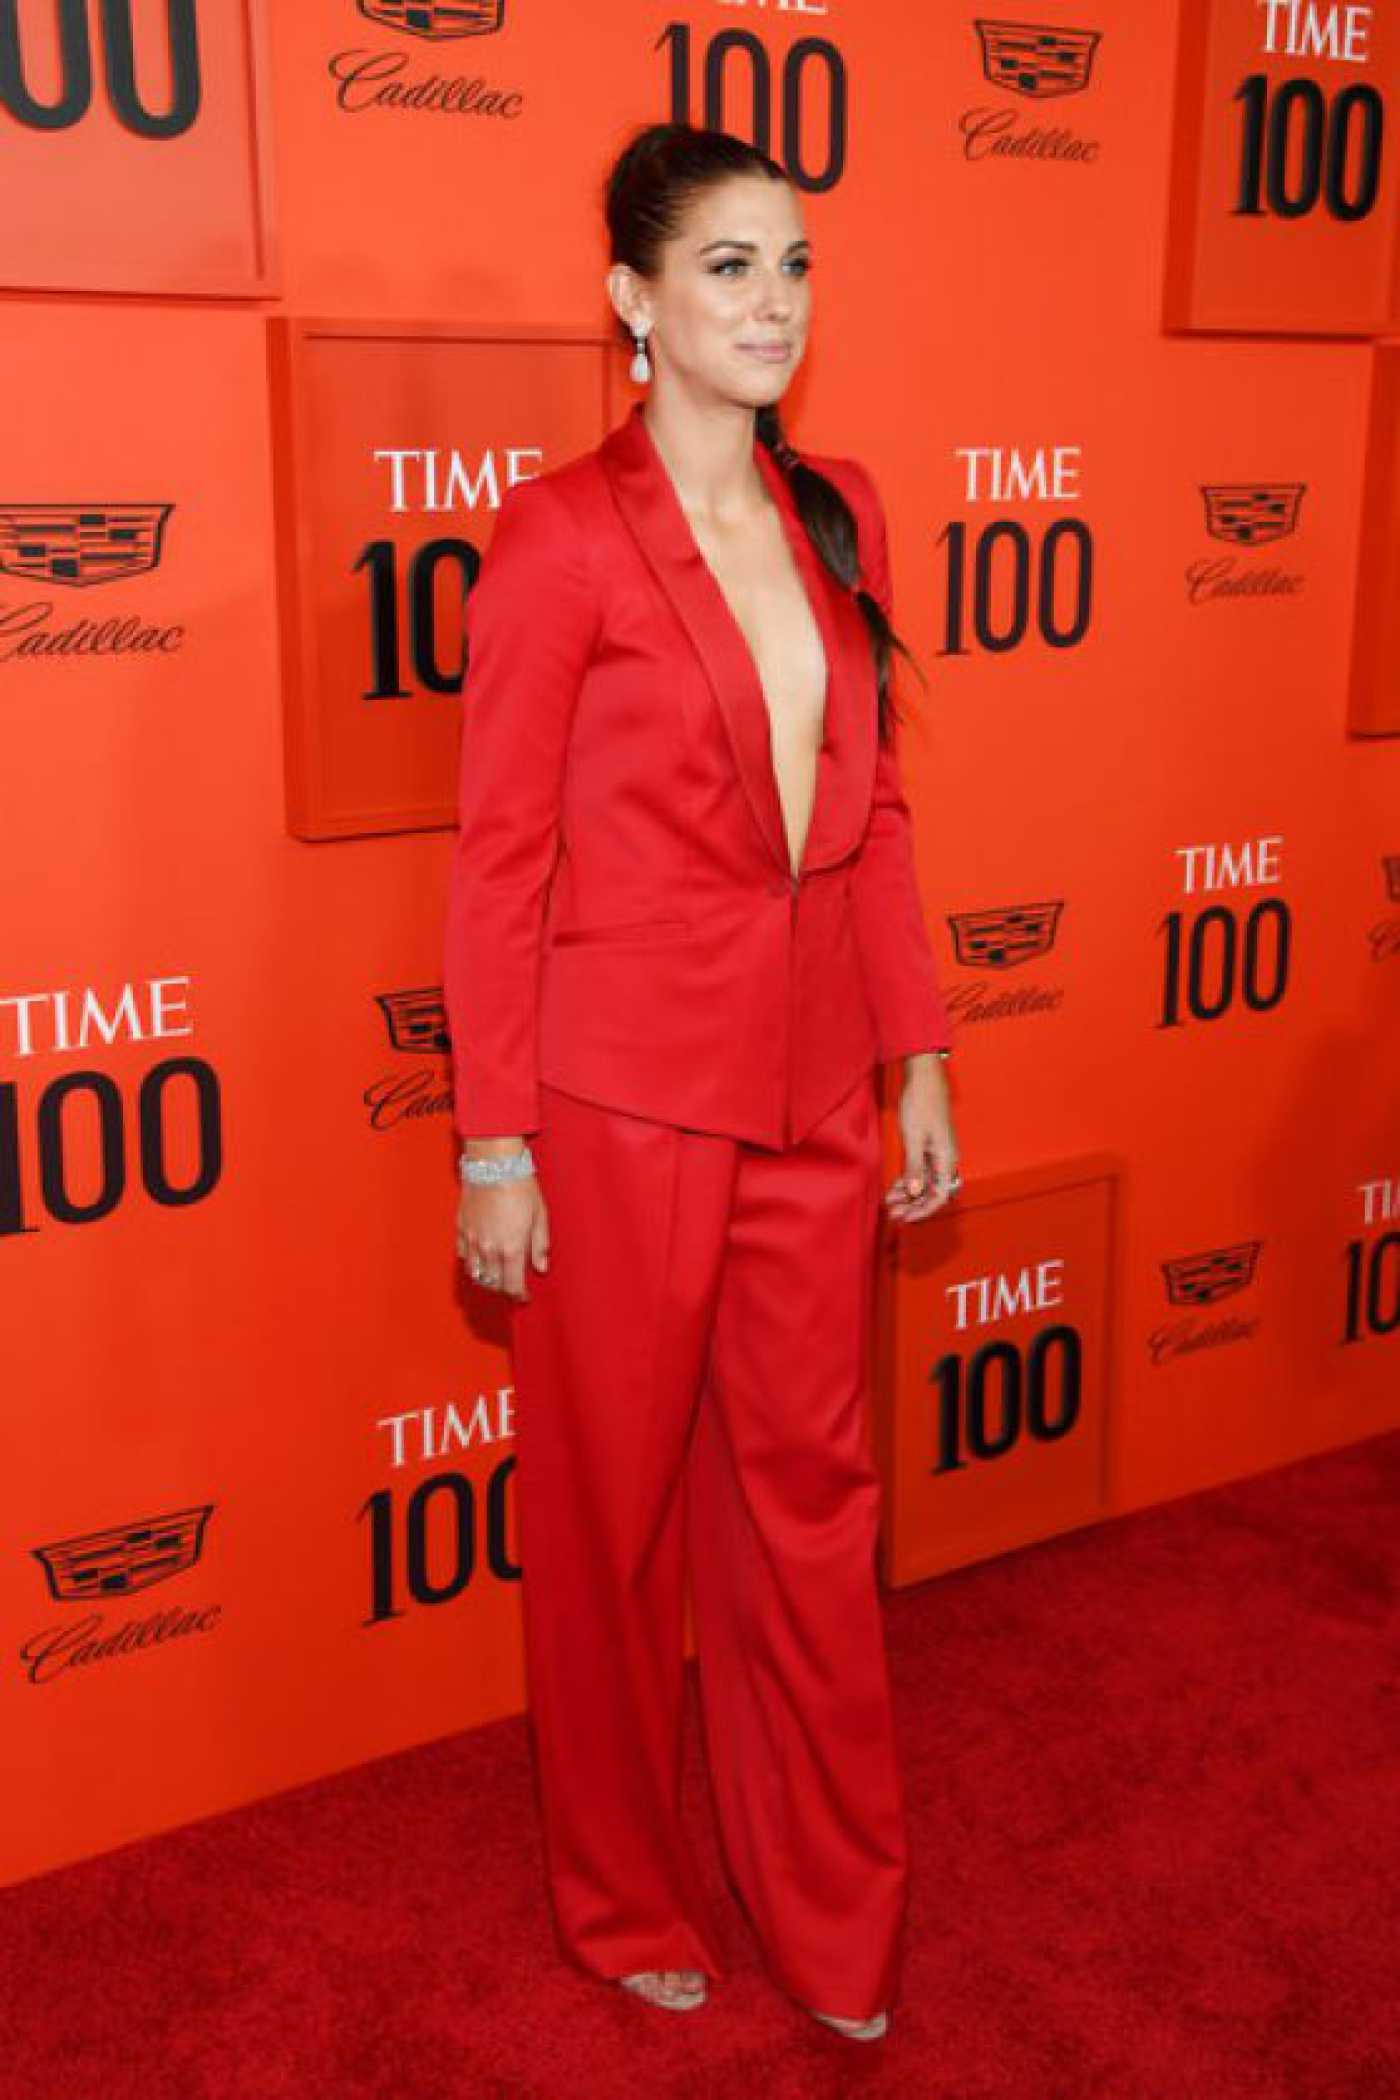 Alex Morgan Attends 2019 TIME 100 Gala at Lincoln Center in NY  04/23/2019